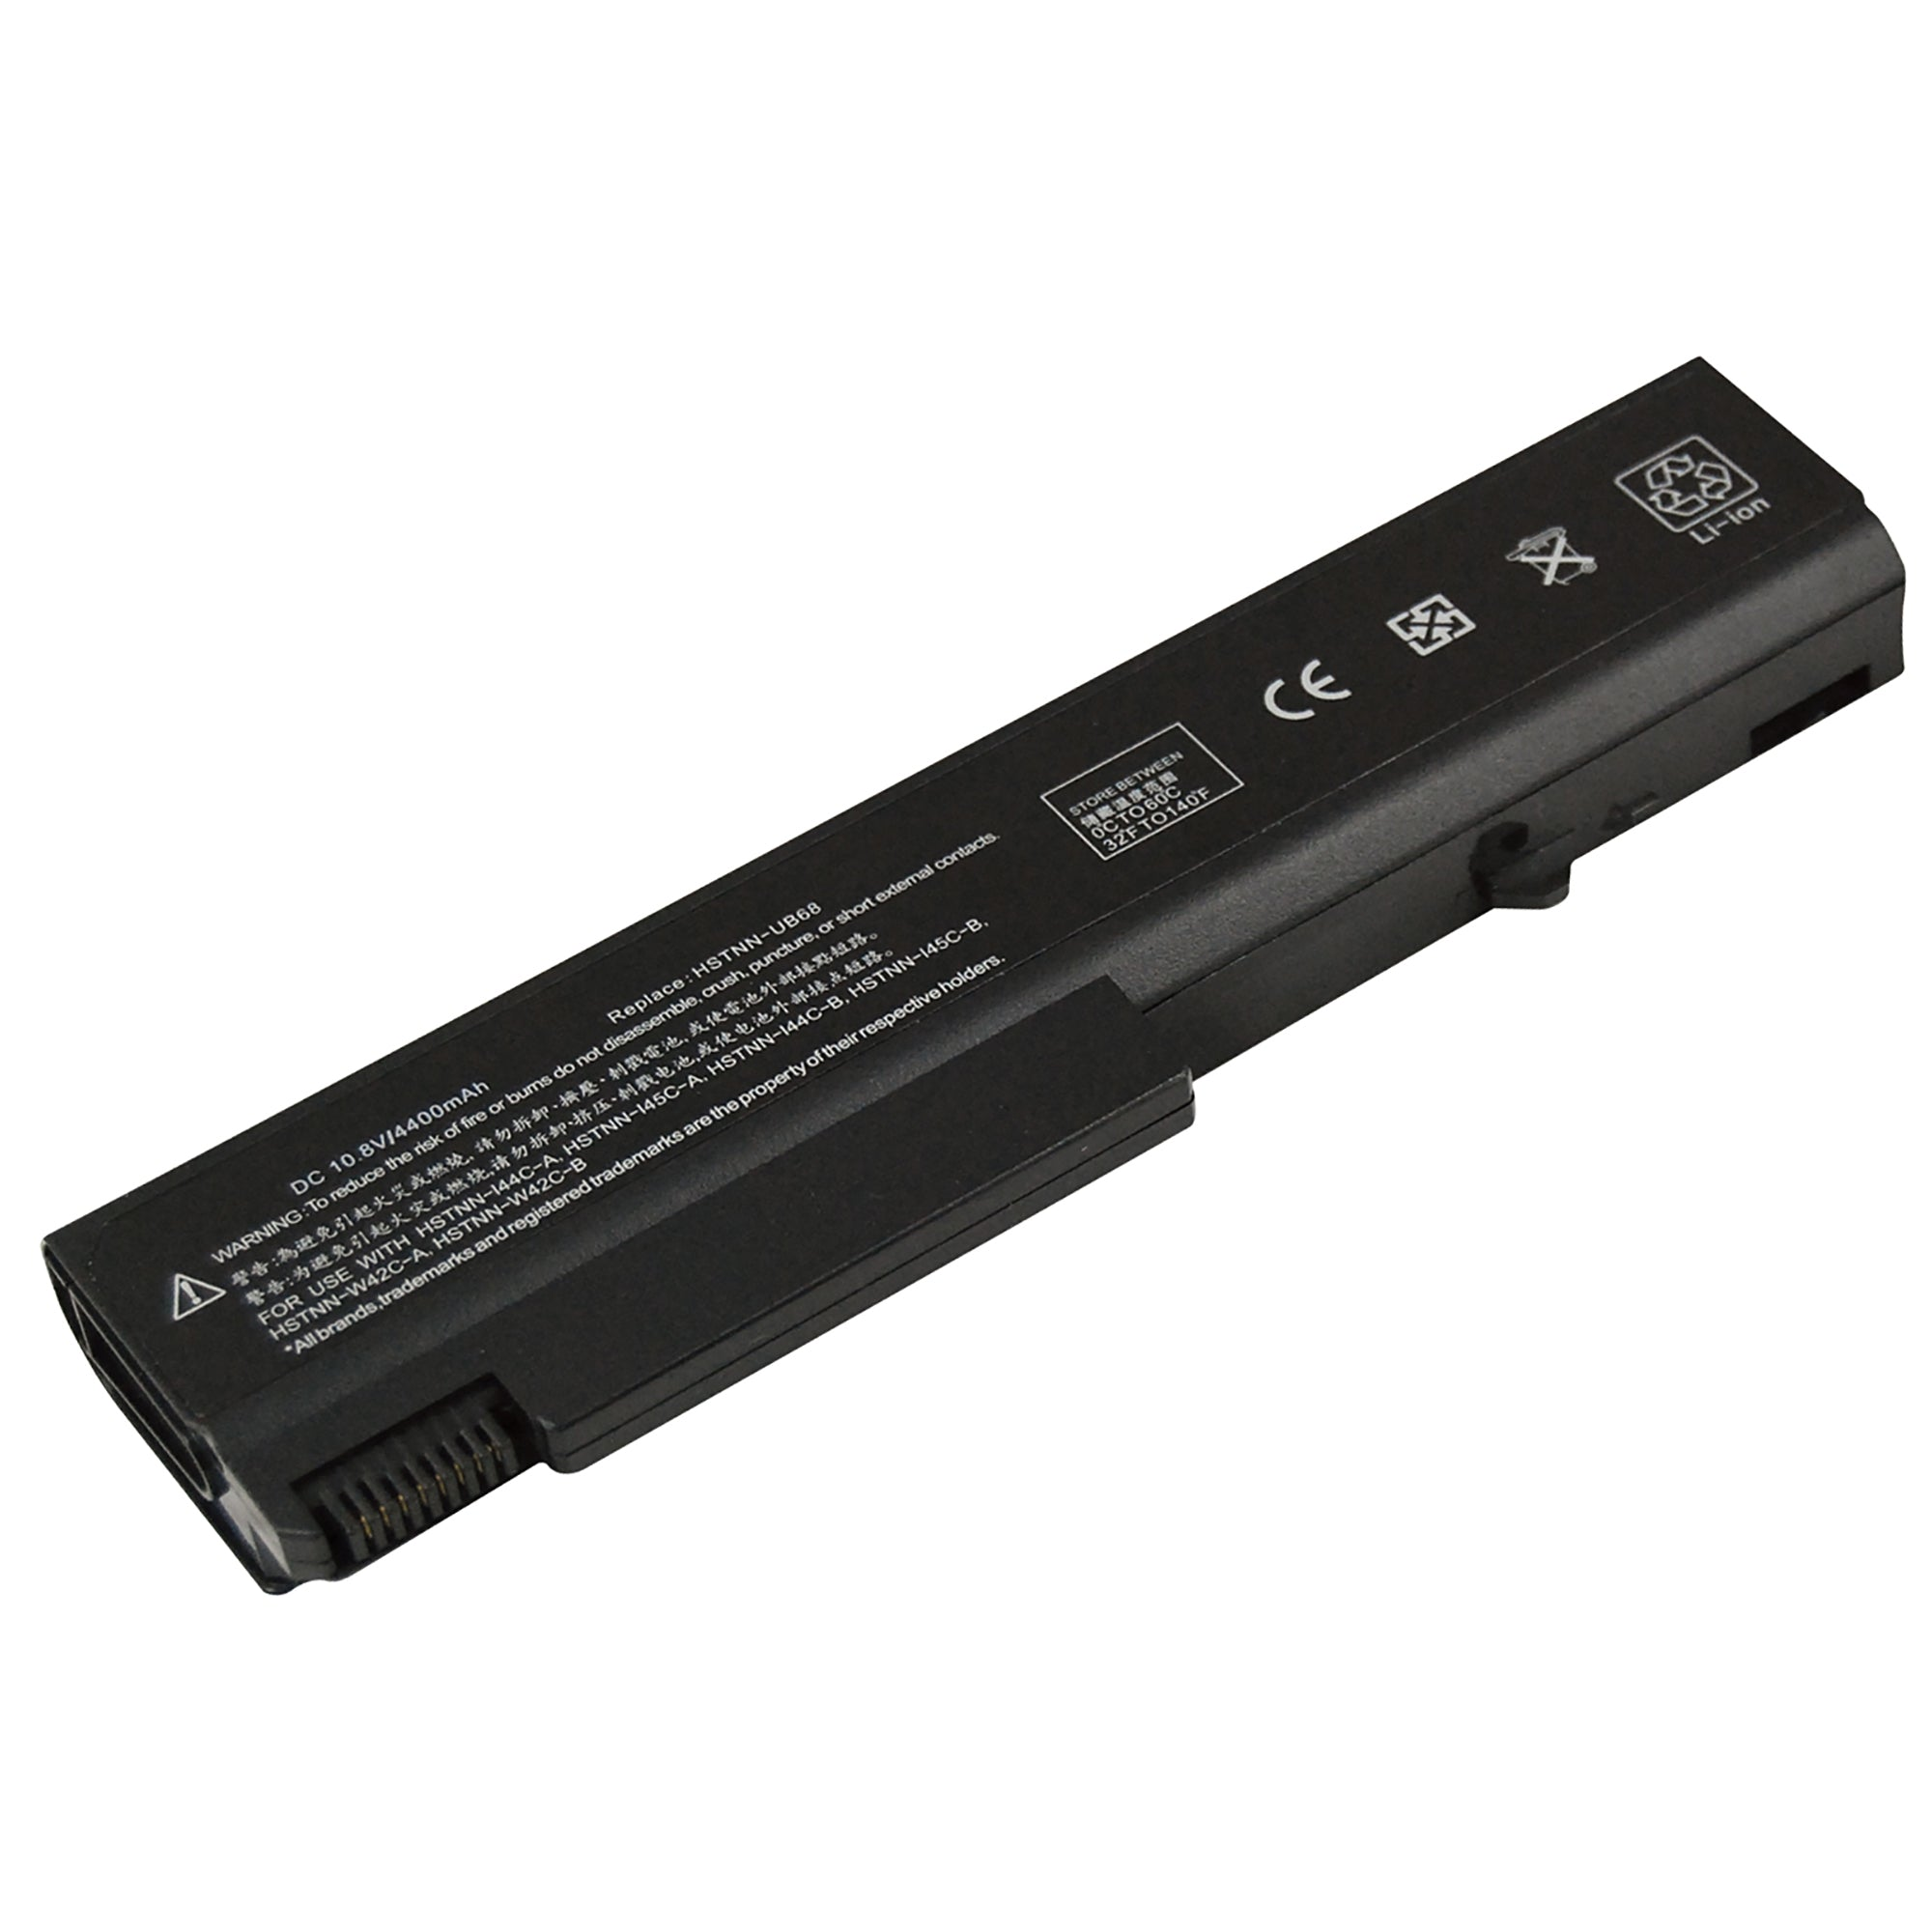 HP HSTNN-XB69 KU531AA 4400mAh 6 Cell Battery